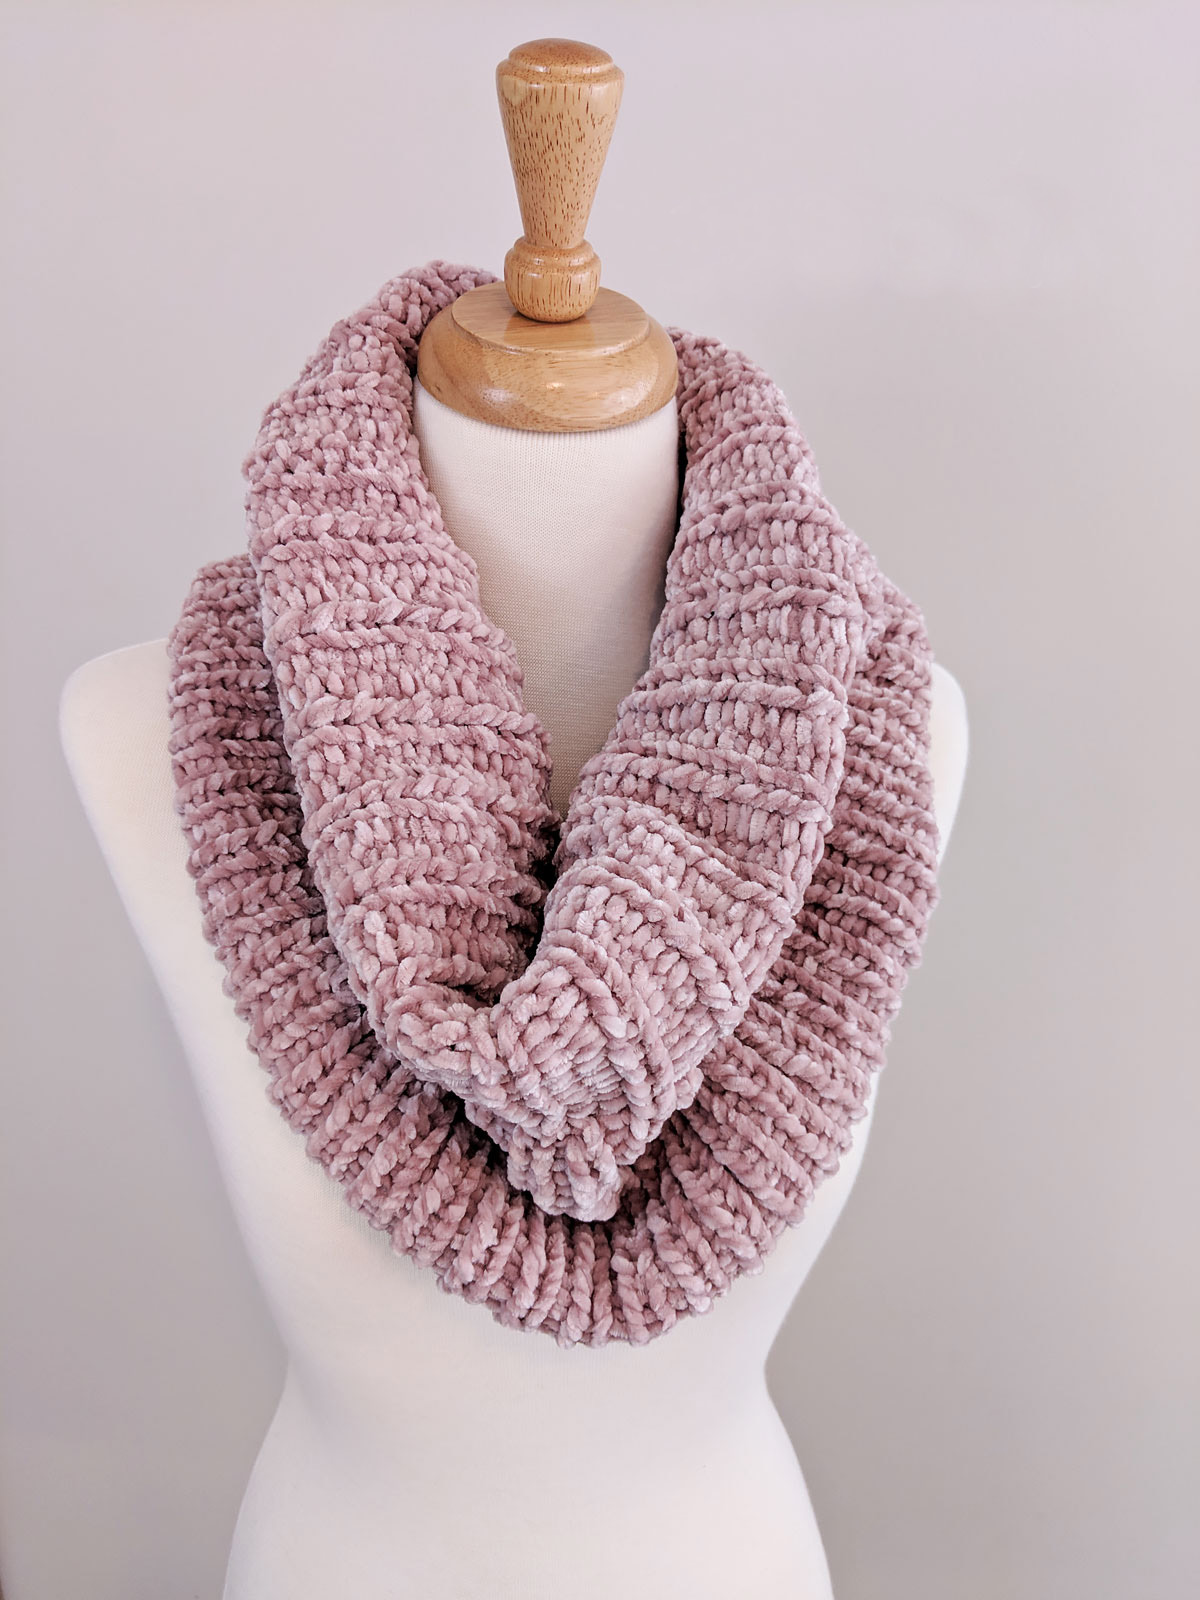 Ribbed Velvet Knit Cowl - If you're looking for something simple, easy and fun to make for gifting, these cowl knitting patterns are perfect to do just that. #cowlknittingpatterns #knittingpatterns #wintercowlknittingpatterns